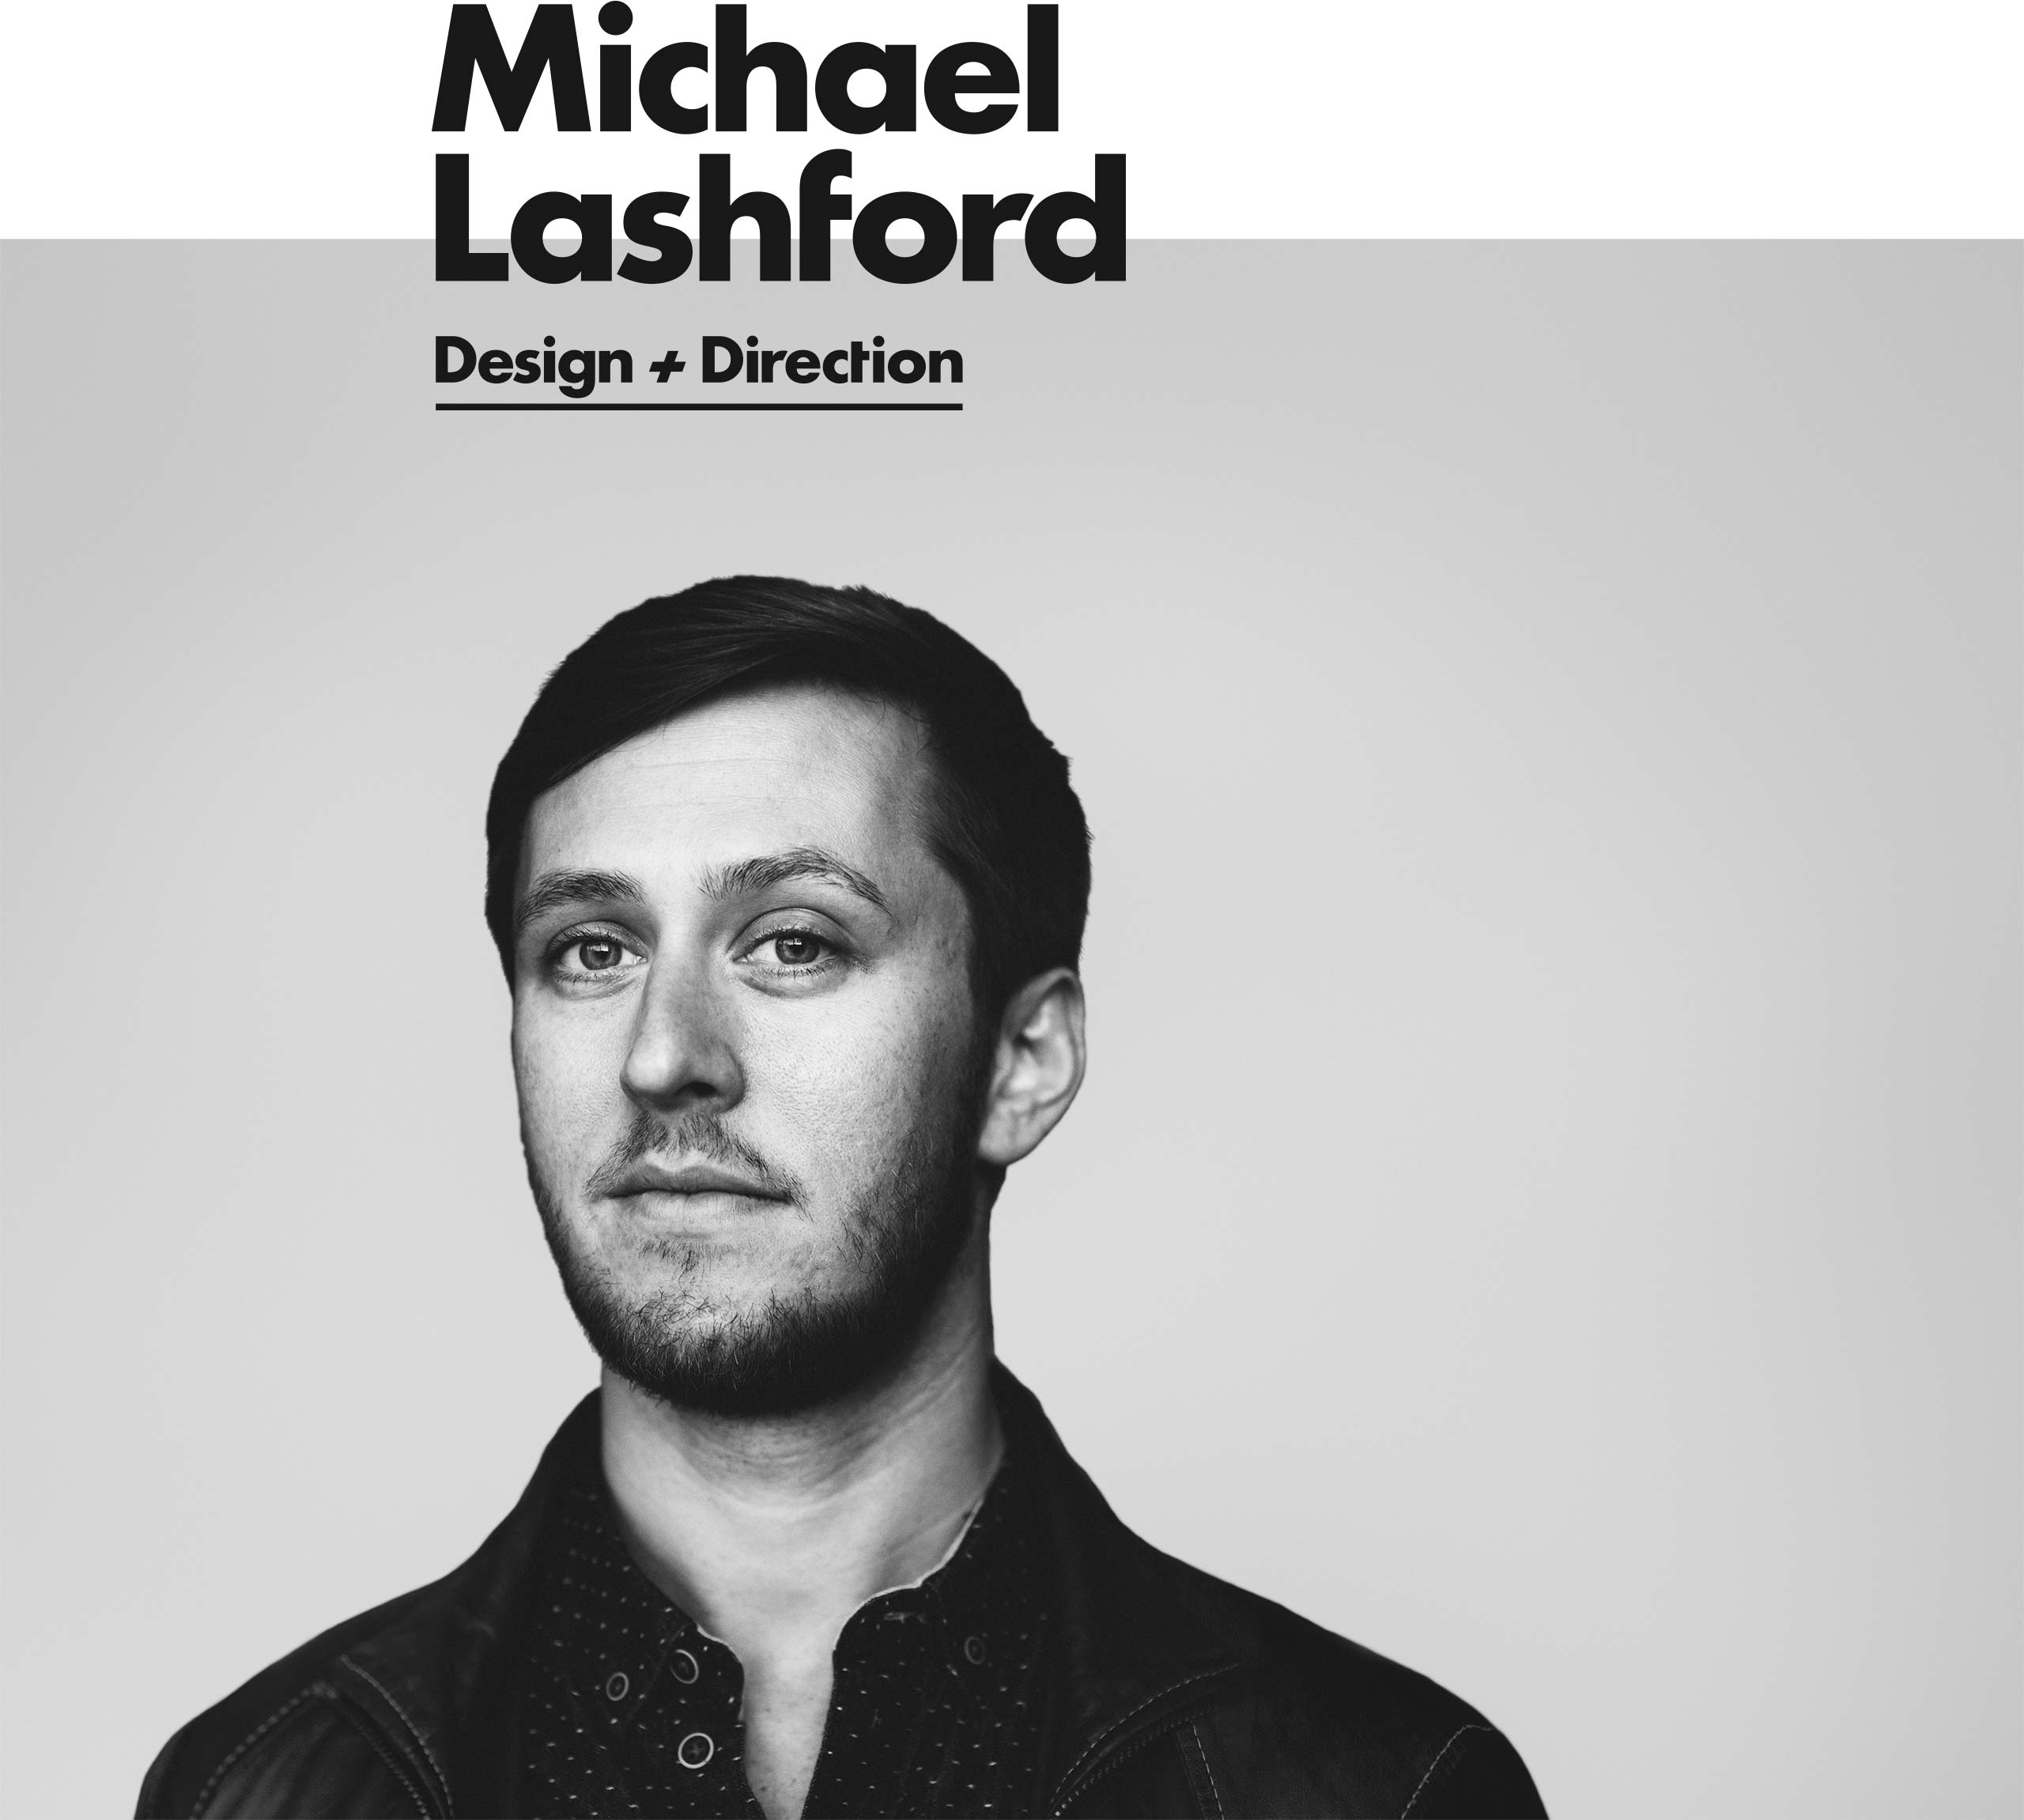 michaellashford_portrait-with-type